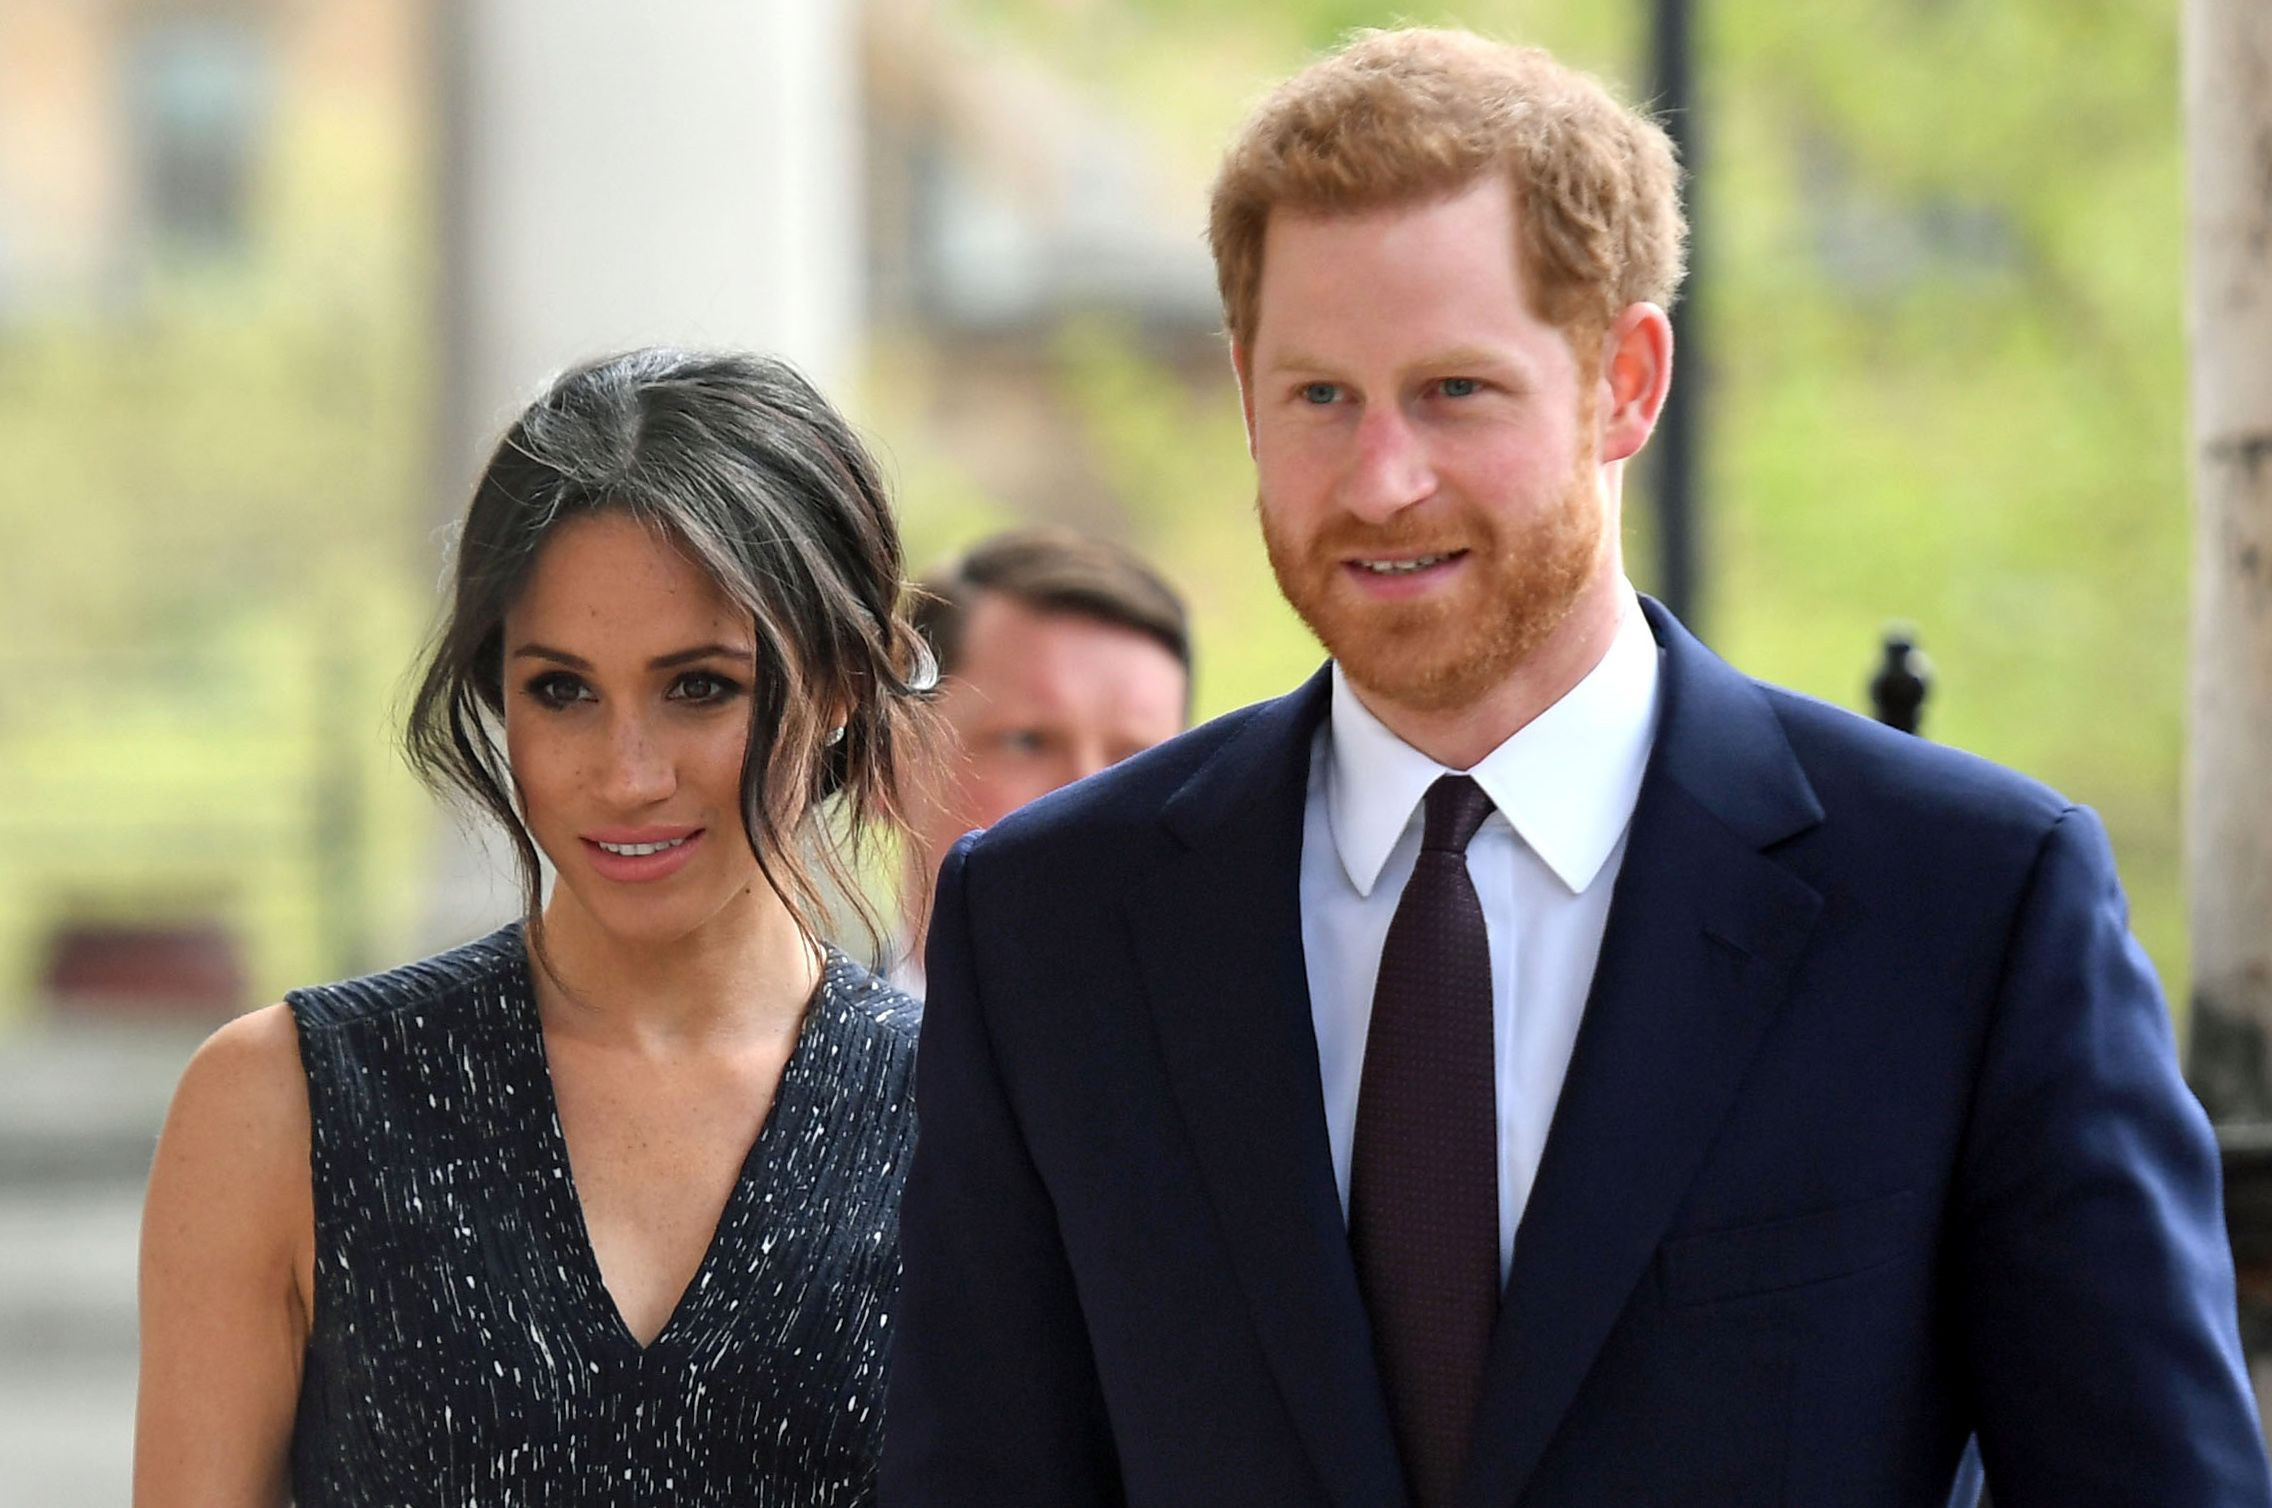 Palace Insiders Are Being Super Shady About Meghan Markle and Prince Harry